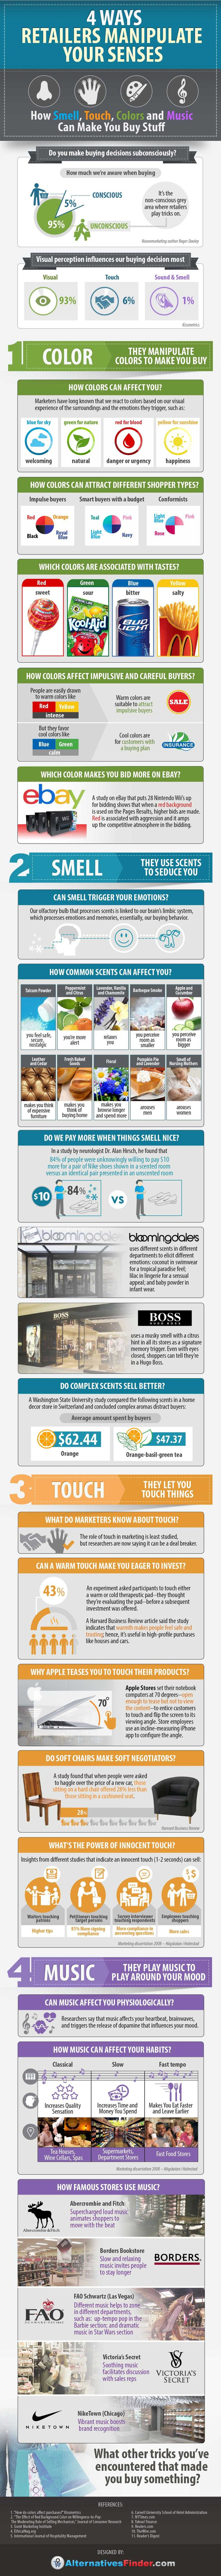 How Retailers Like Apple Mess With Our Senses to Boost Sales (Infographic)